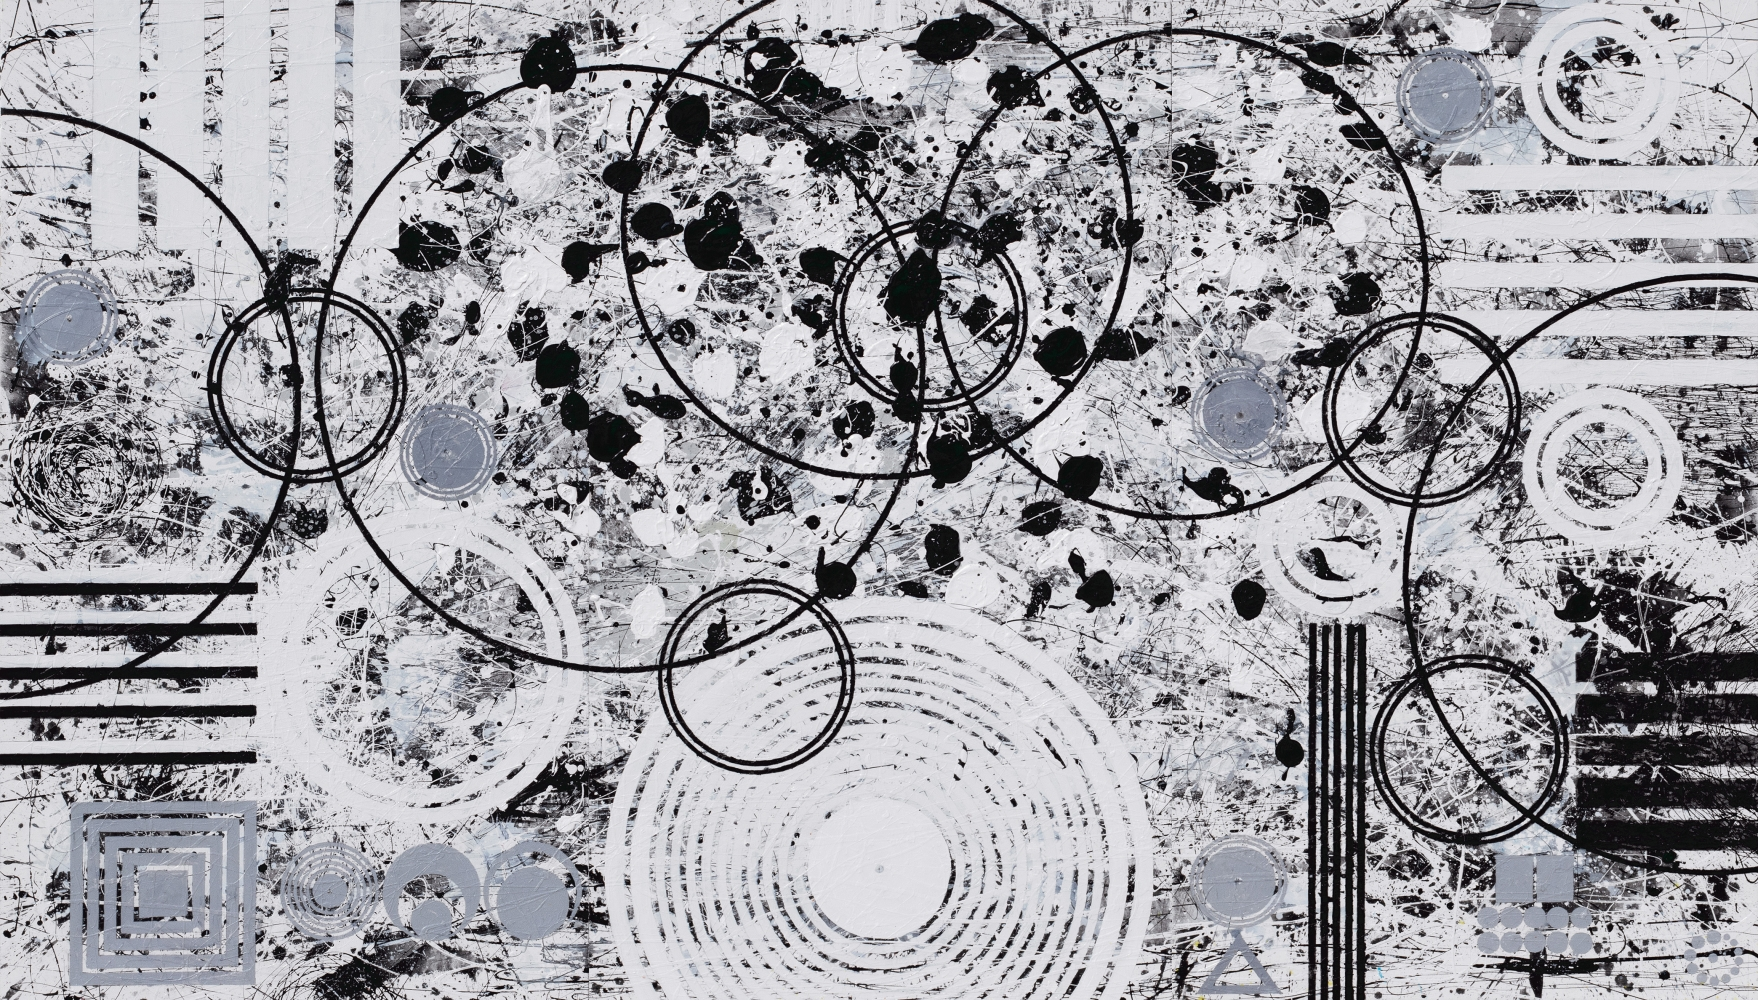 J. Steven Manolis, Black-and-White (Universe) 84.144.02, 2019, Acrylic on canvas, 84 x 144 inches, 84.144.02, Large Black and White Wall Art, Abstract expressionism paintings for sale at Manolis Projects Art Gallery, Miami, Fl